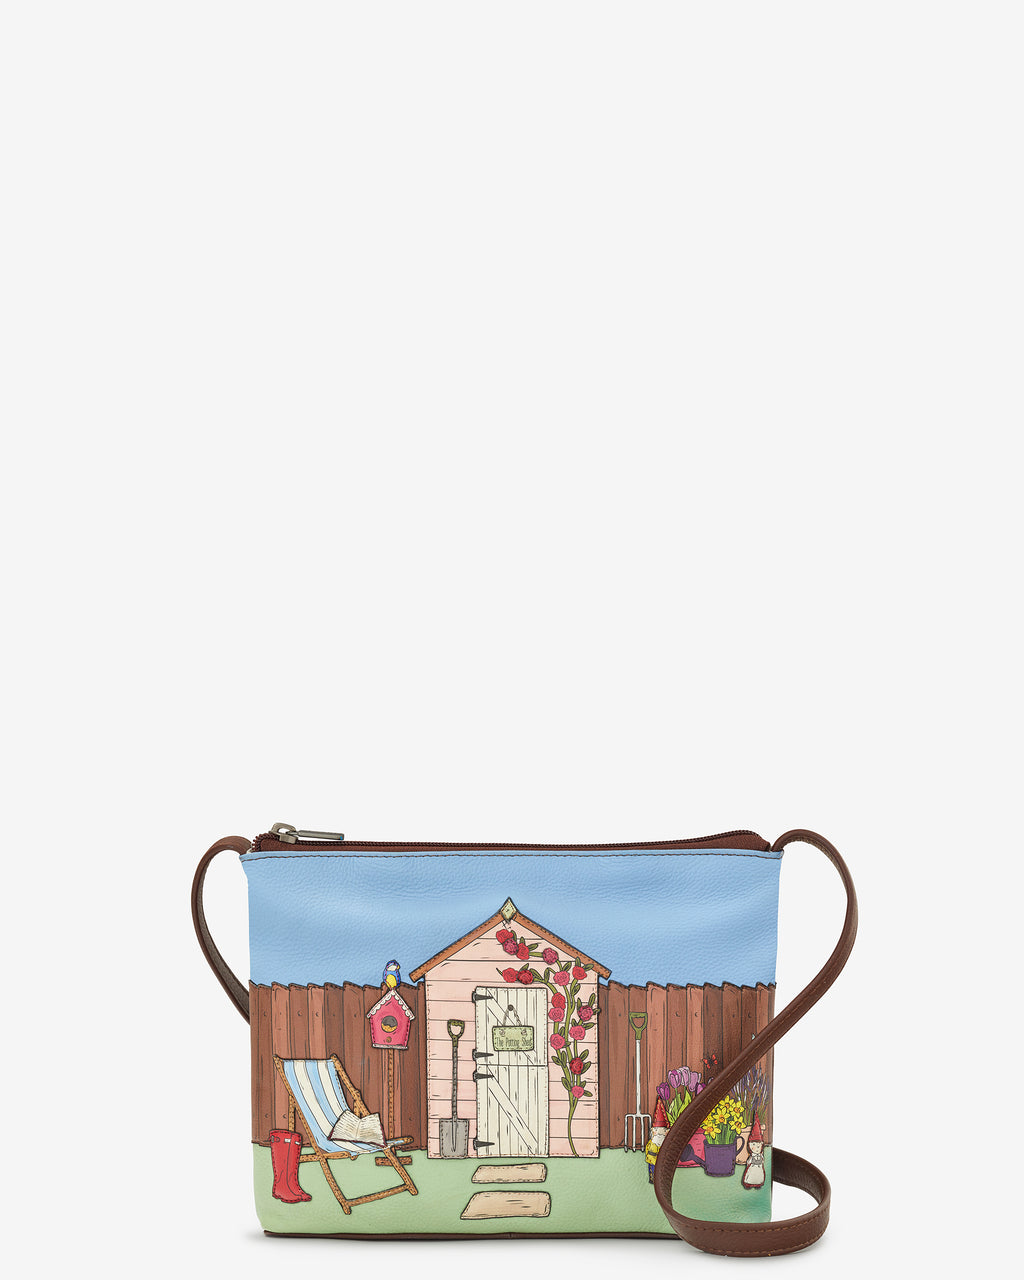 The Potting Shed Leather Cross Body Bag